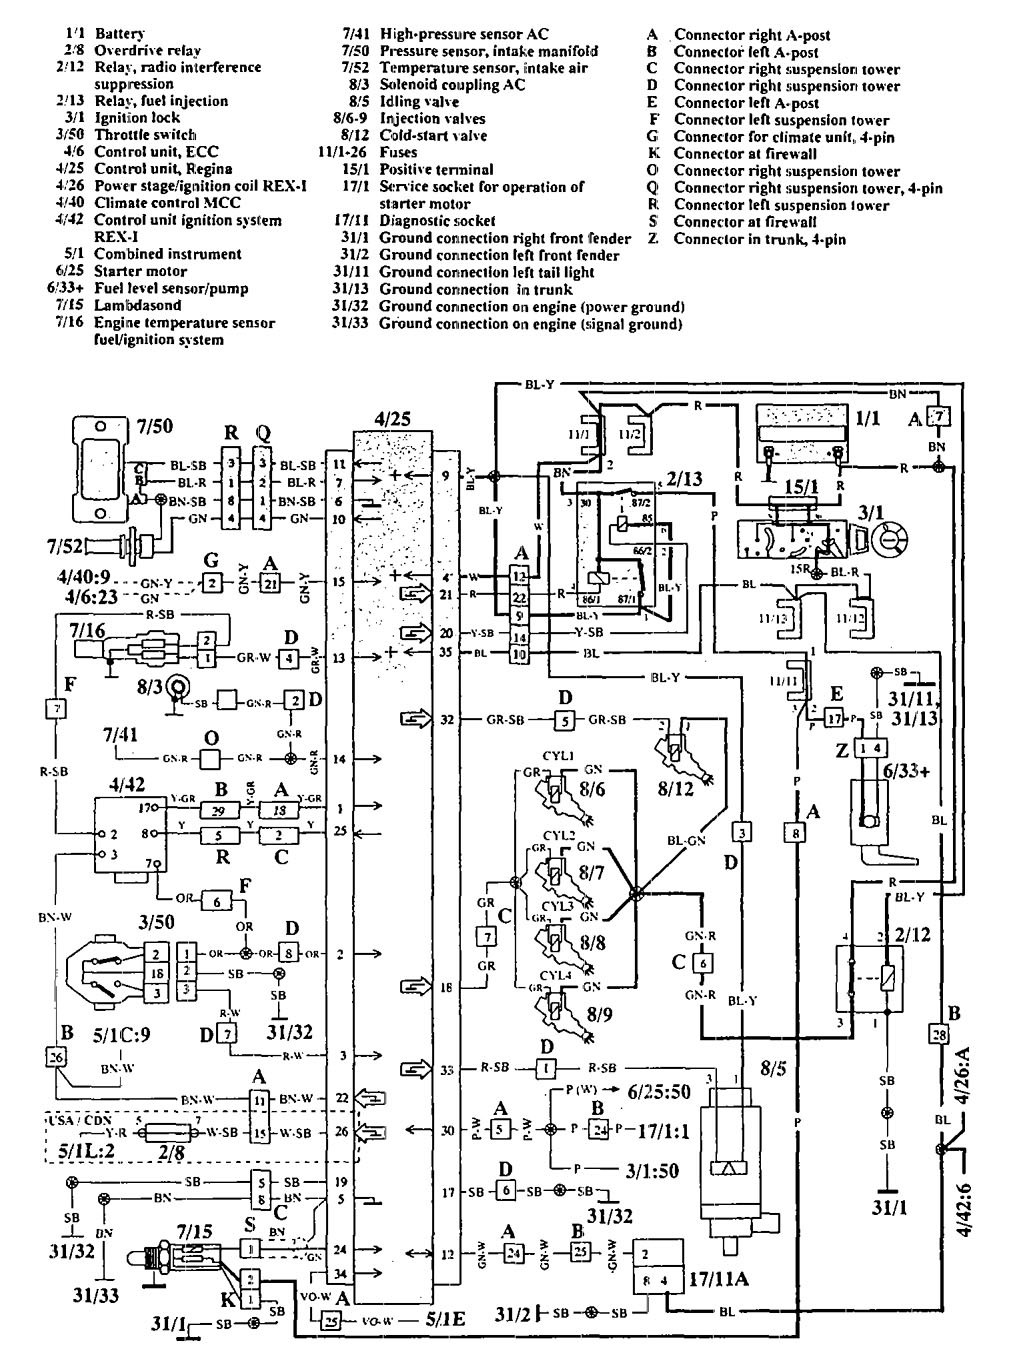 volvo 940 wiring diagram fuel controls v1 1 1992 model no 15948183 wiring diagram model wiring diagrams collection  at alyssarenee.co